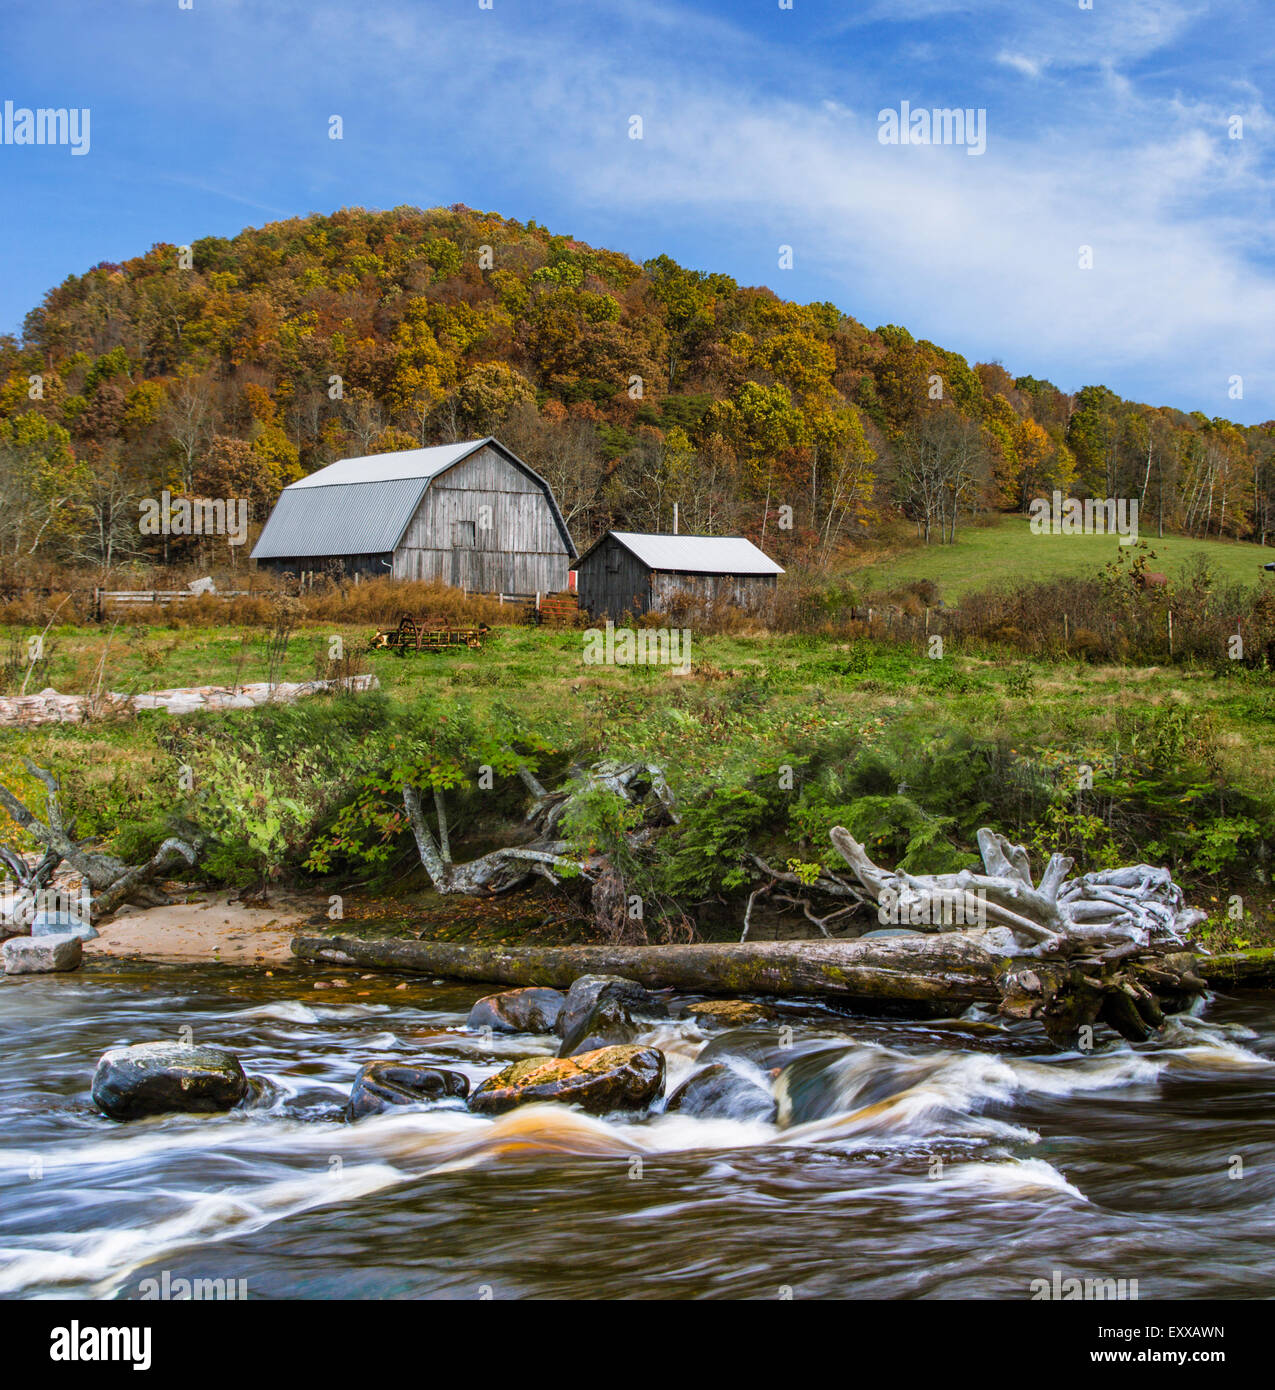 A Pastoral Landscape, Barn And River Below A Hill In Autumn, Central Ohio, USA - Stock Image